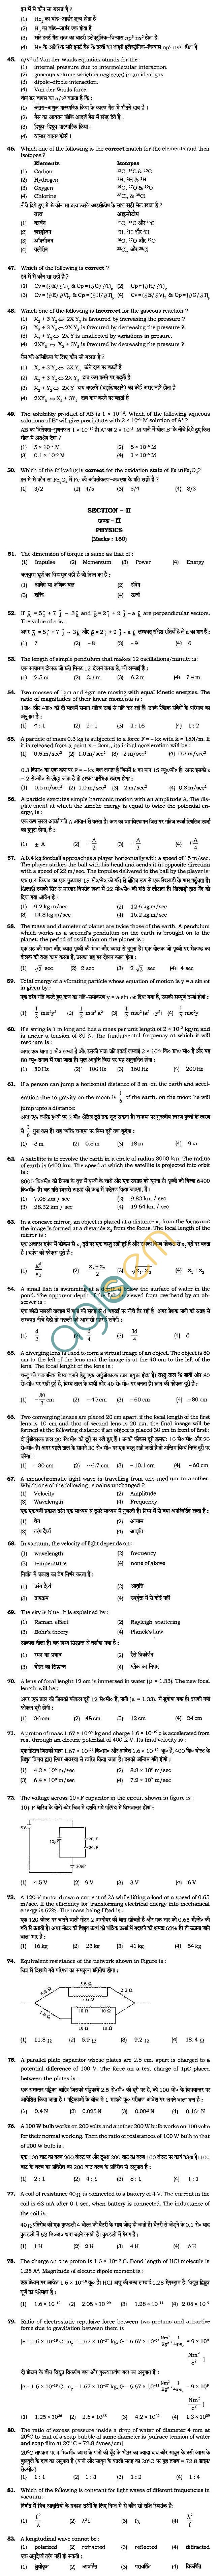 BHU UET 2010 B.Sc. Bio Question Paper